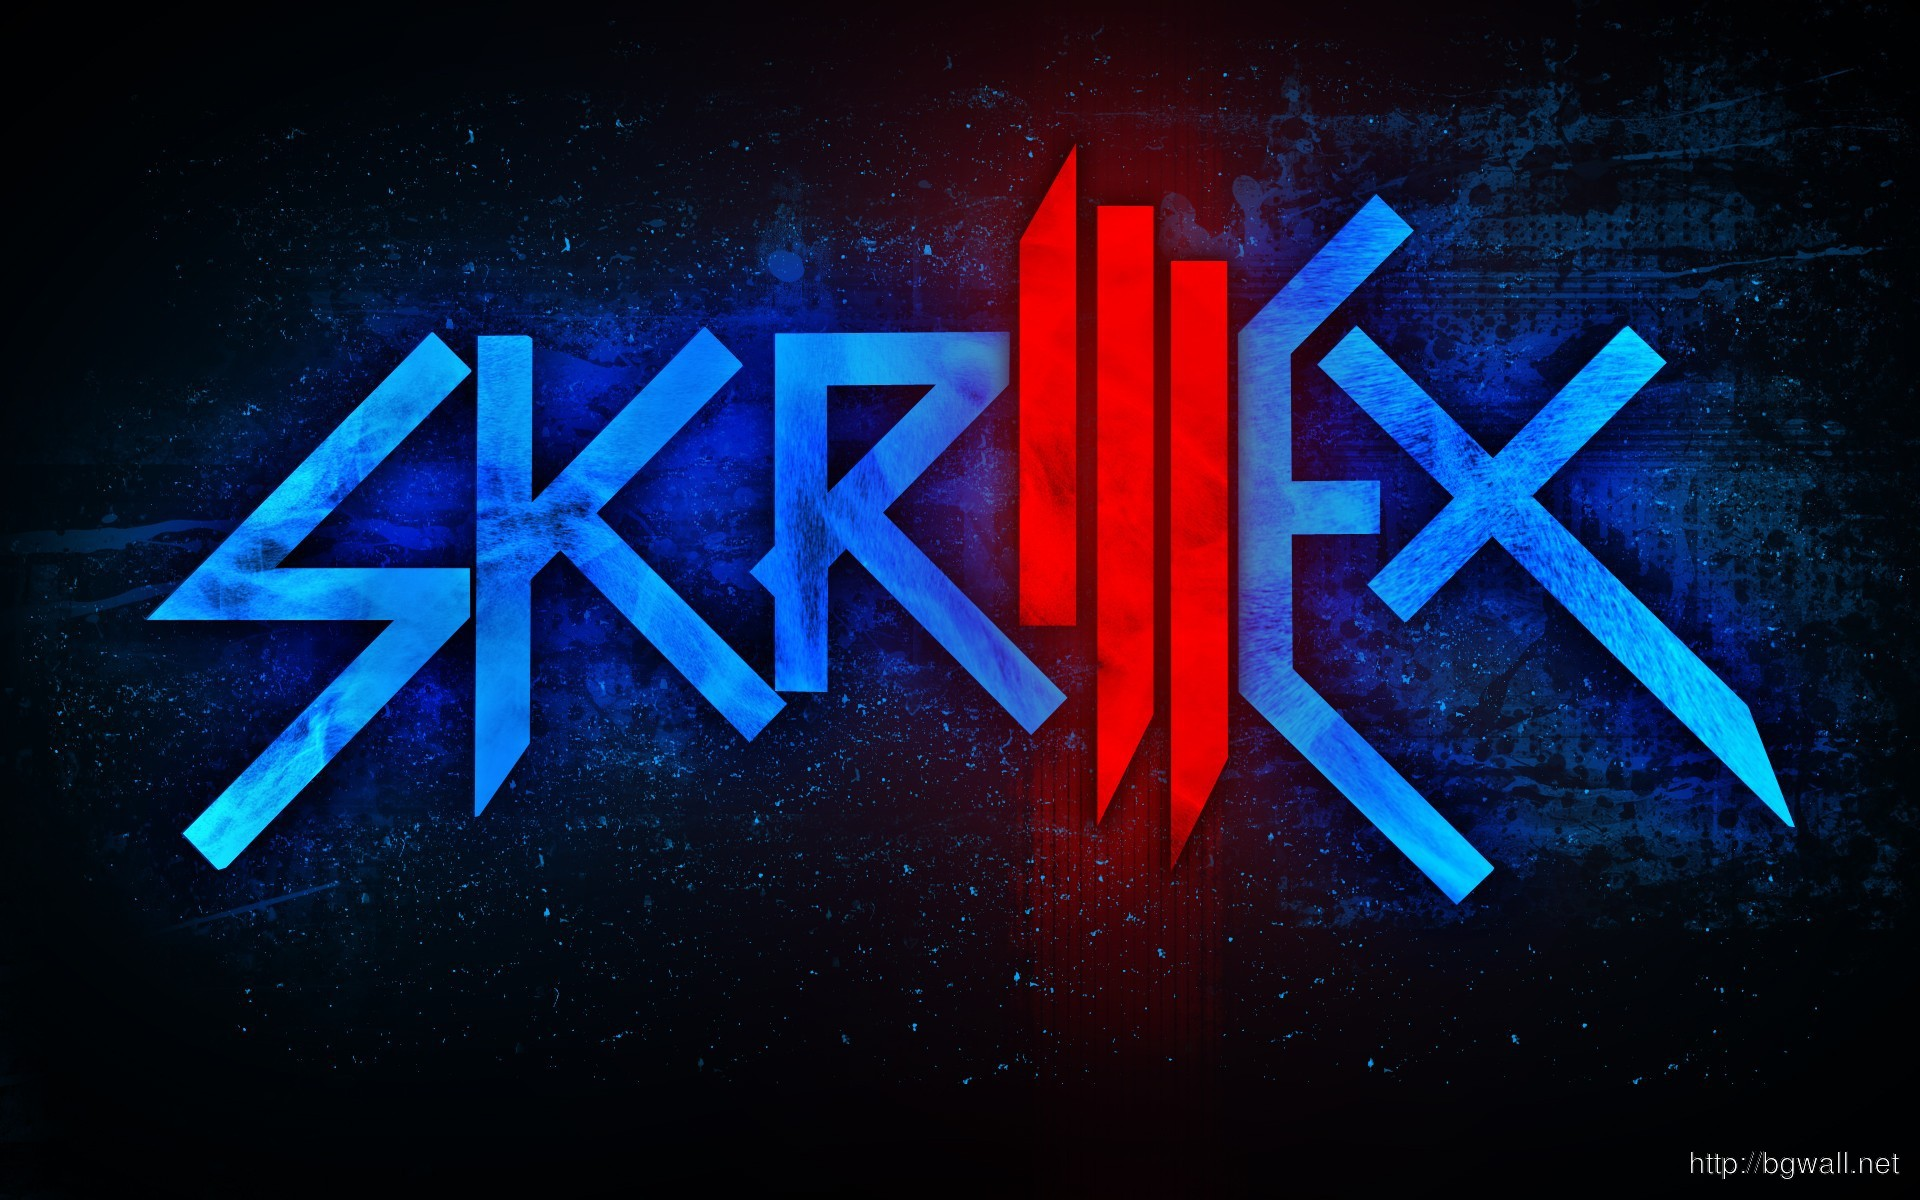 Skrillex Wallpaper 9595 Full Size